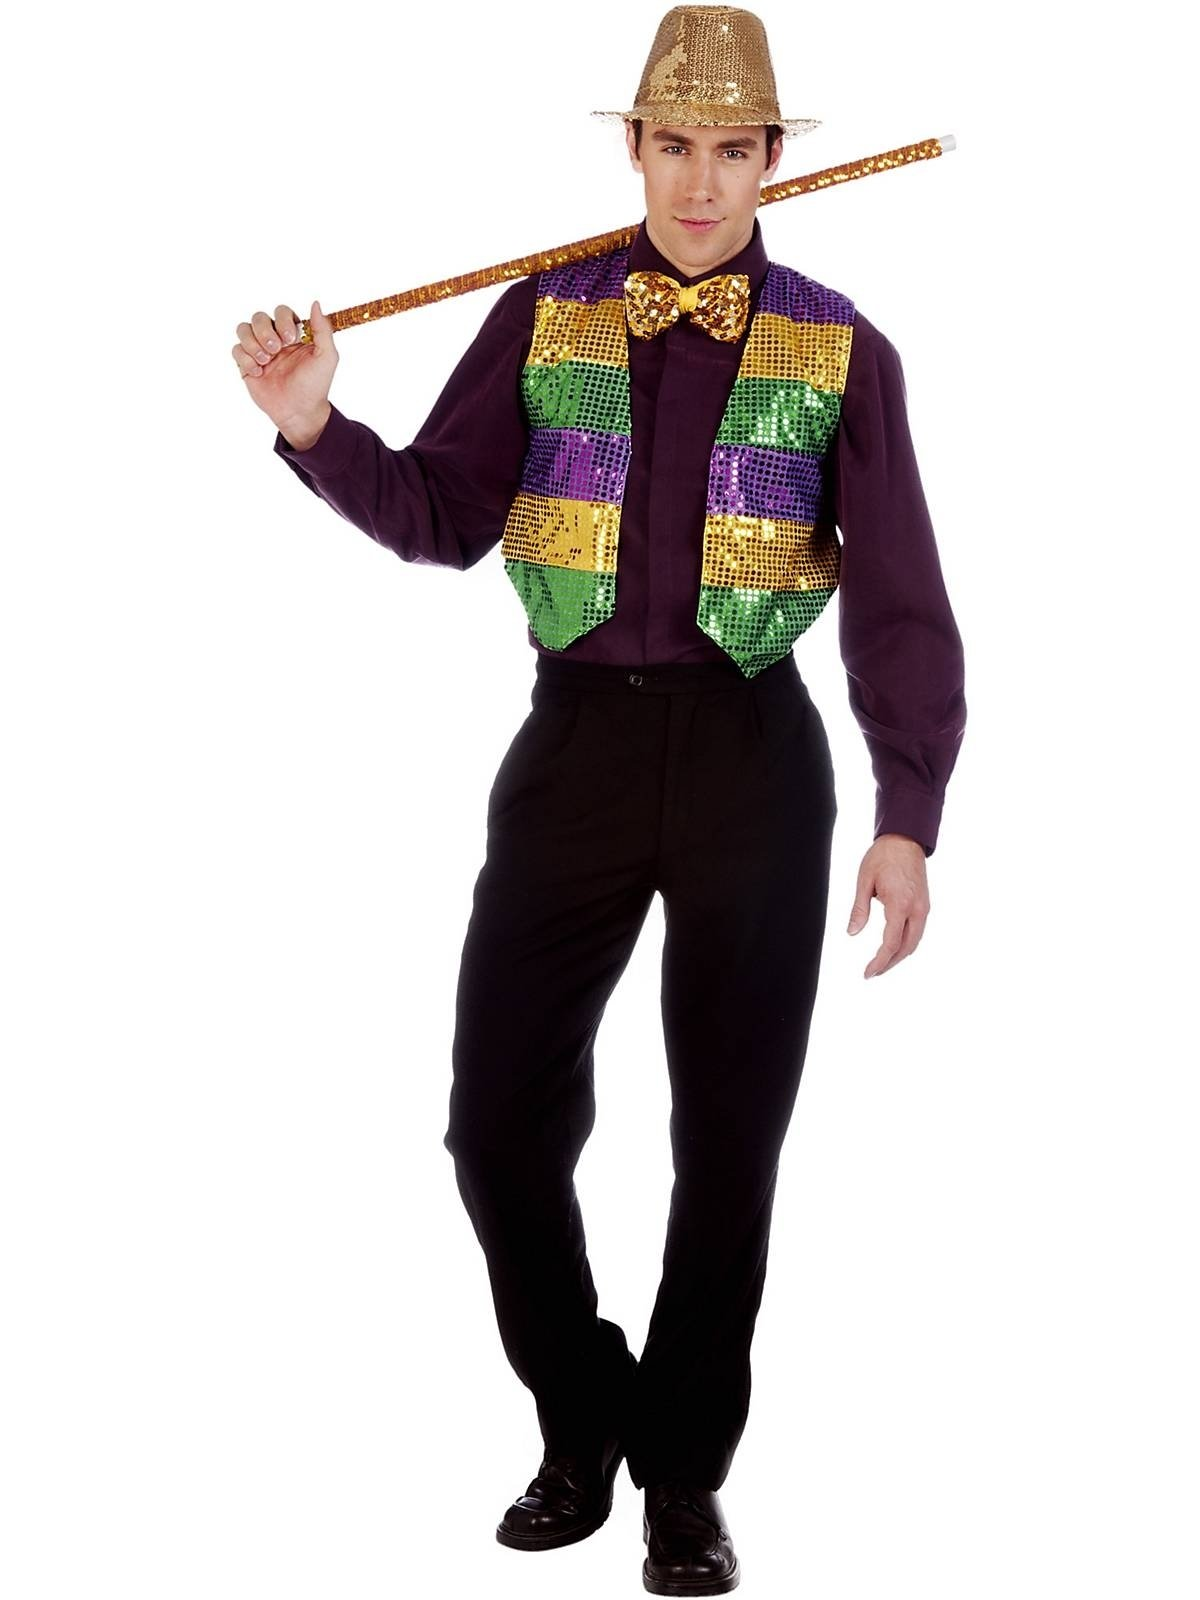 10 Great Mardi Gras Party Outfit Ideas mardi gras vest costume mardi gras sequins and costumes 2020